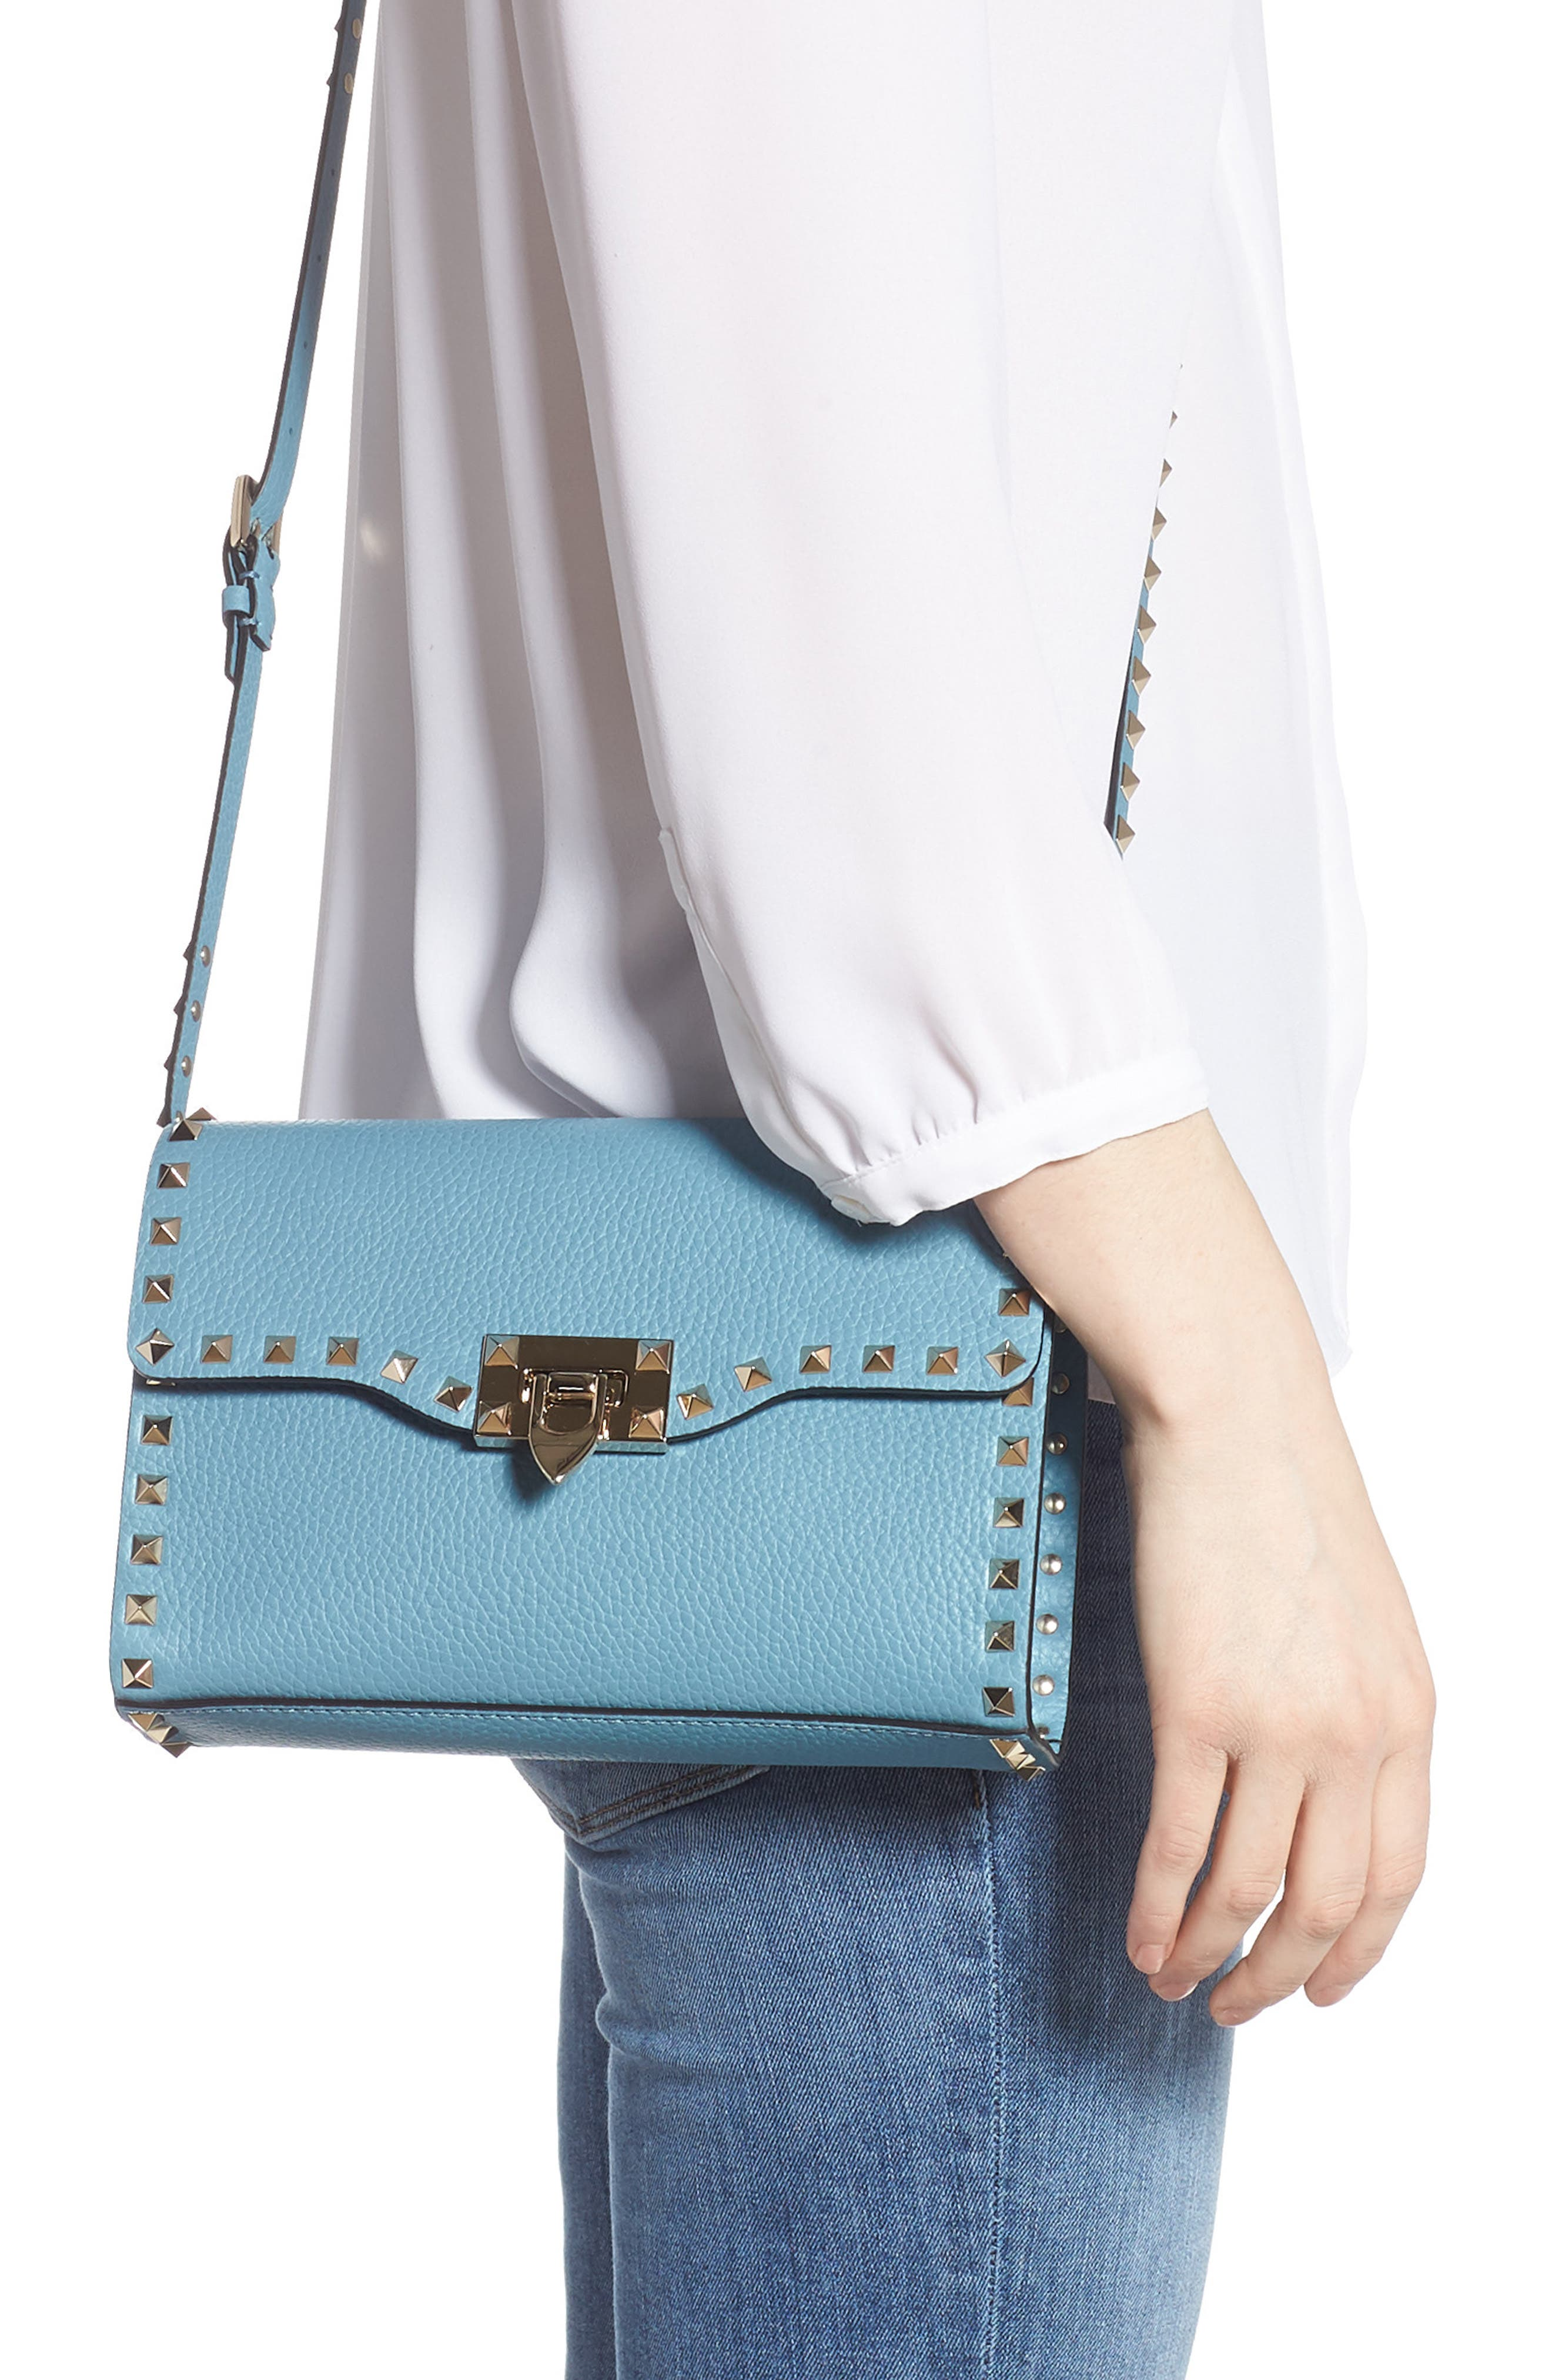 VALENTINO GARAVANI, Medium Rockstud Leather Crossbody Bag, Alternate thumbnail 2, color, 485